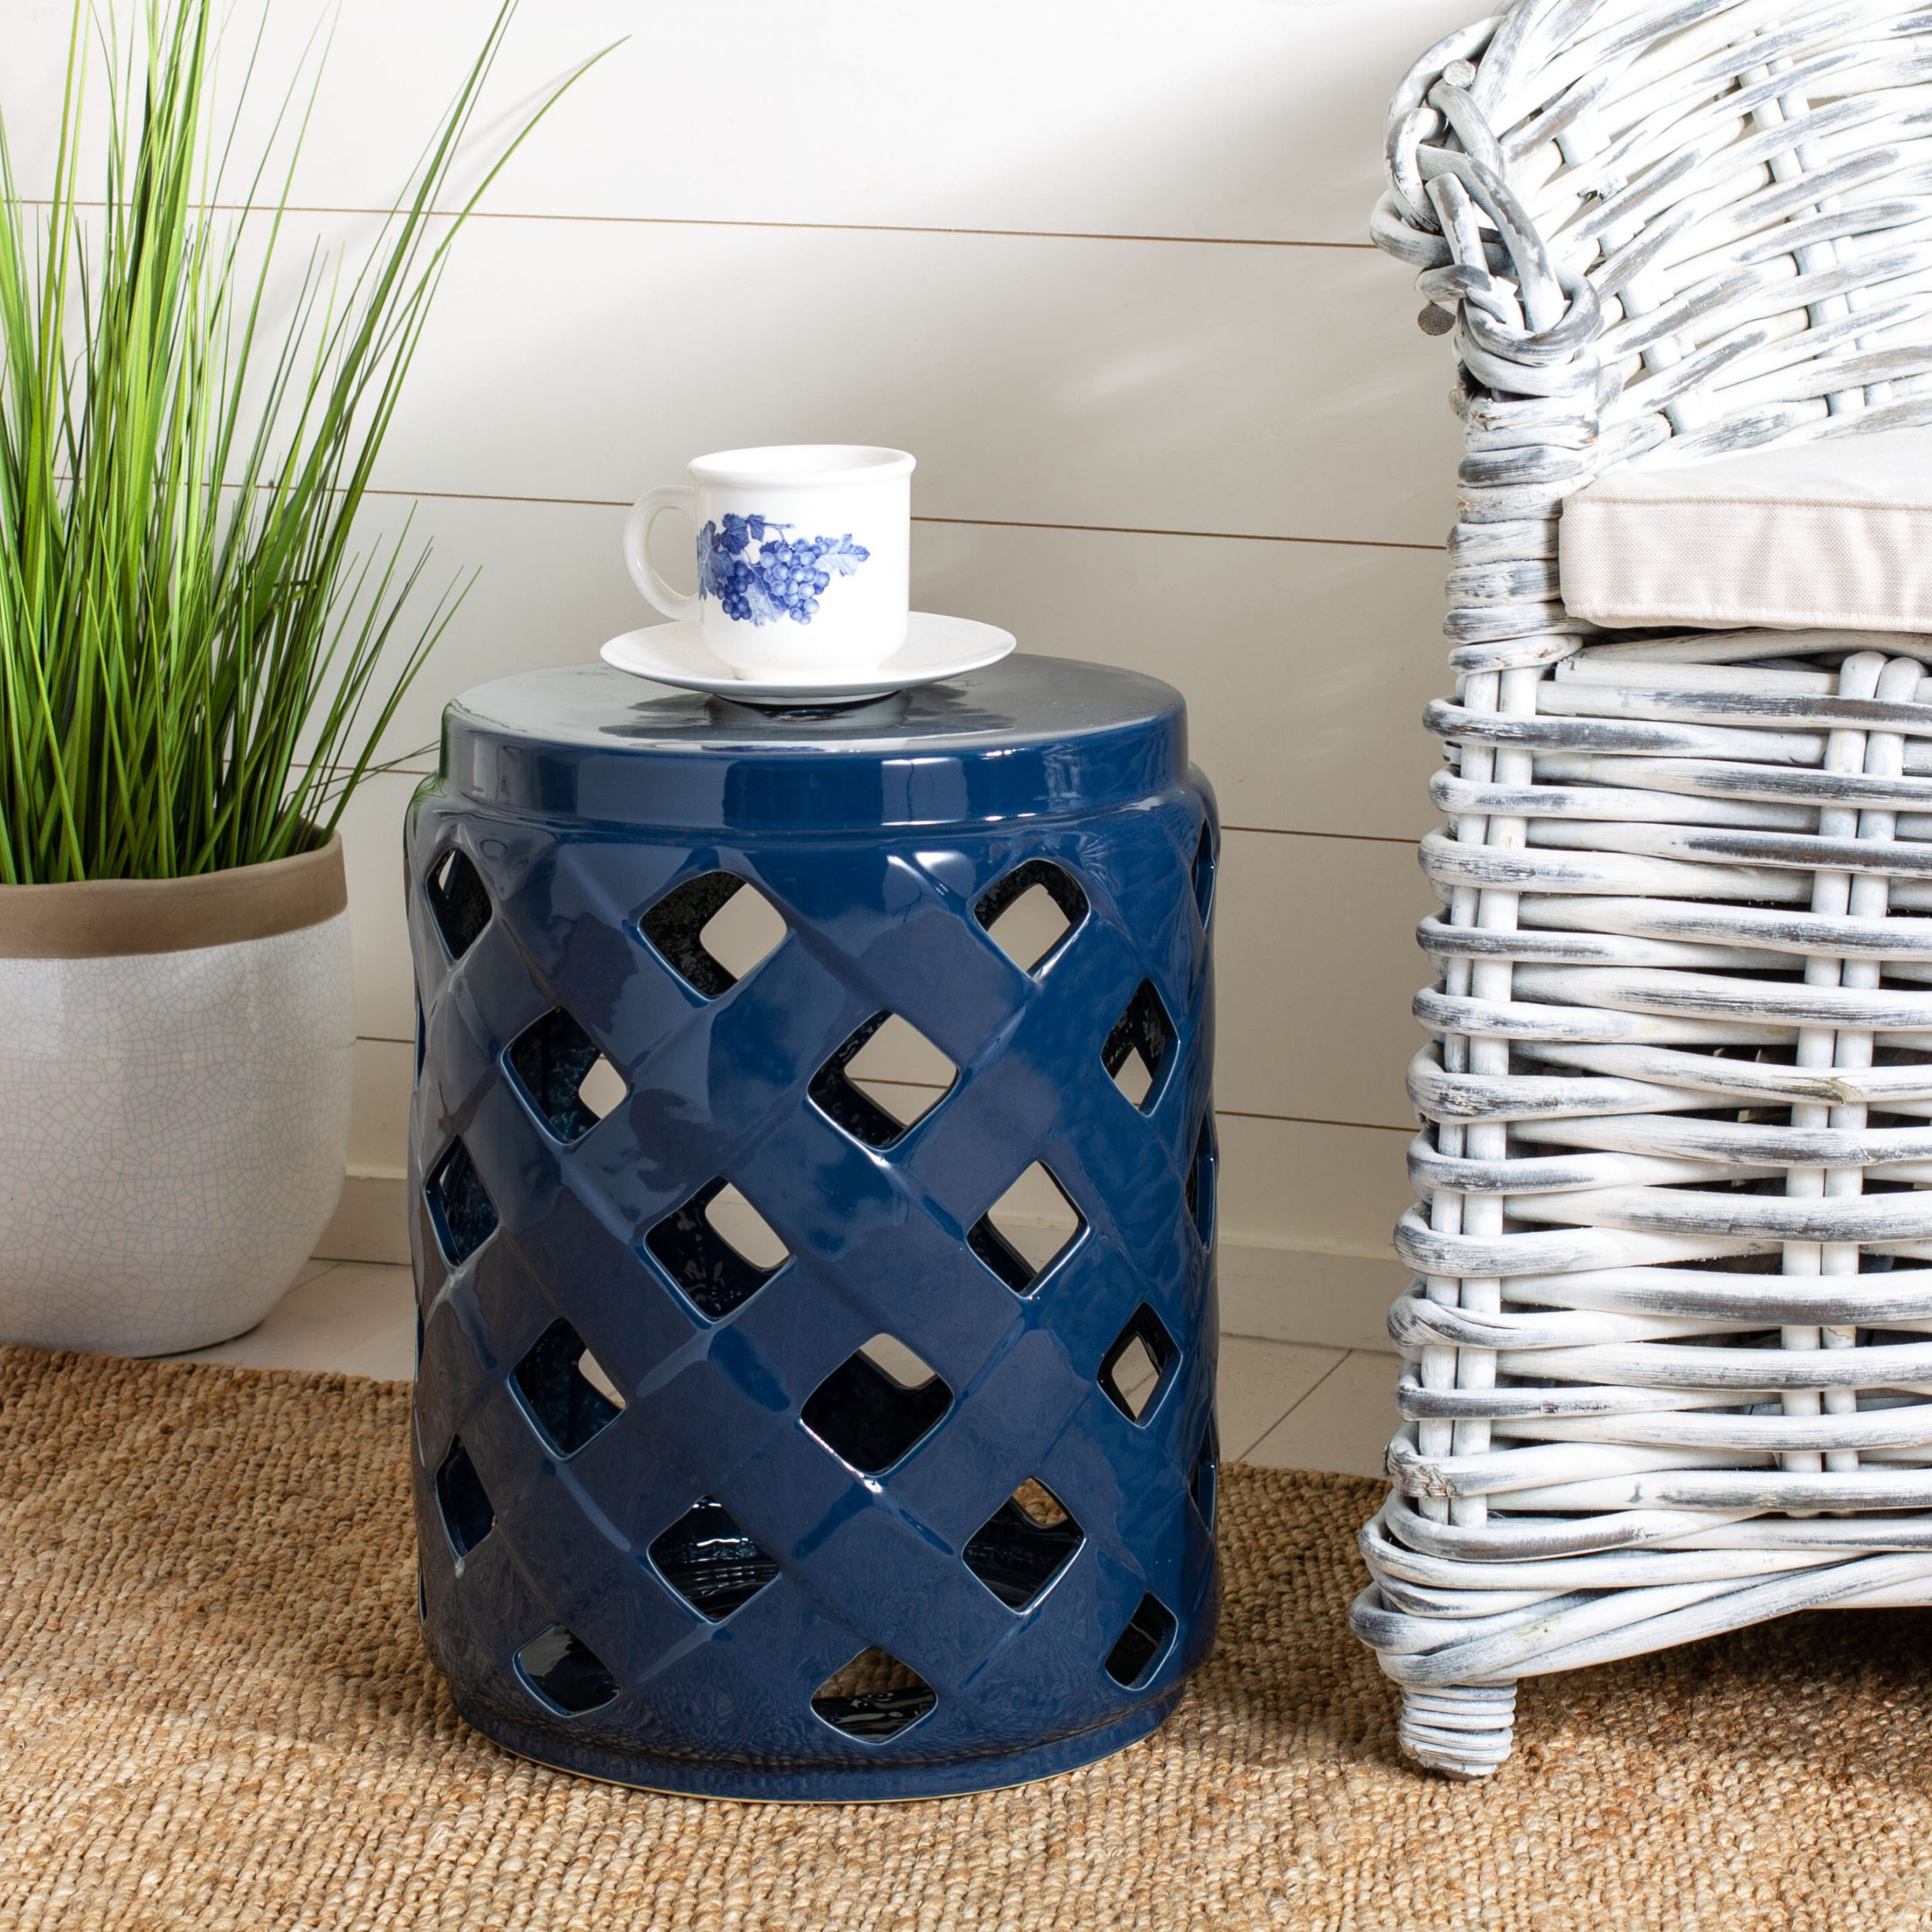 Wayfair Pertaining To Most Recent Svendsen Ceramic Garden Stools (View 13 of 30)